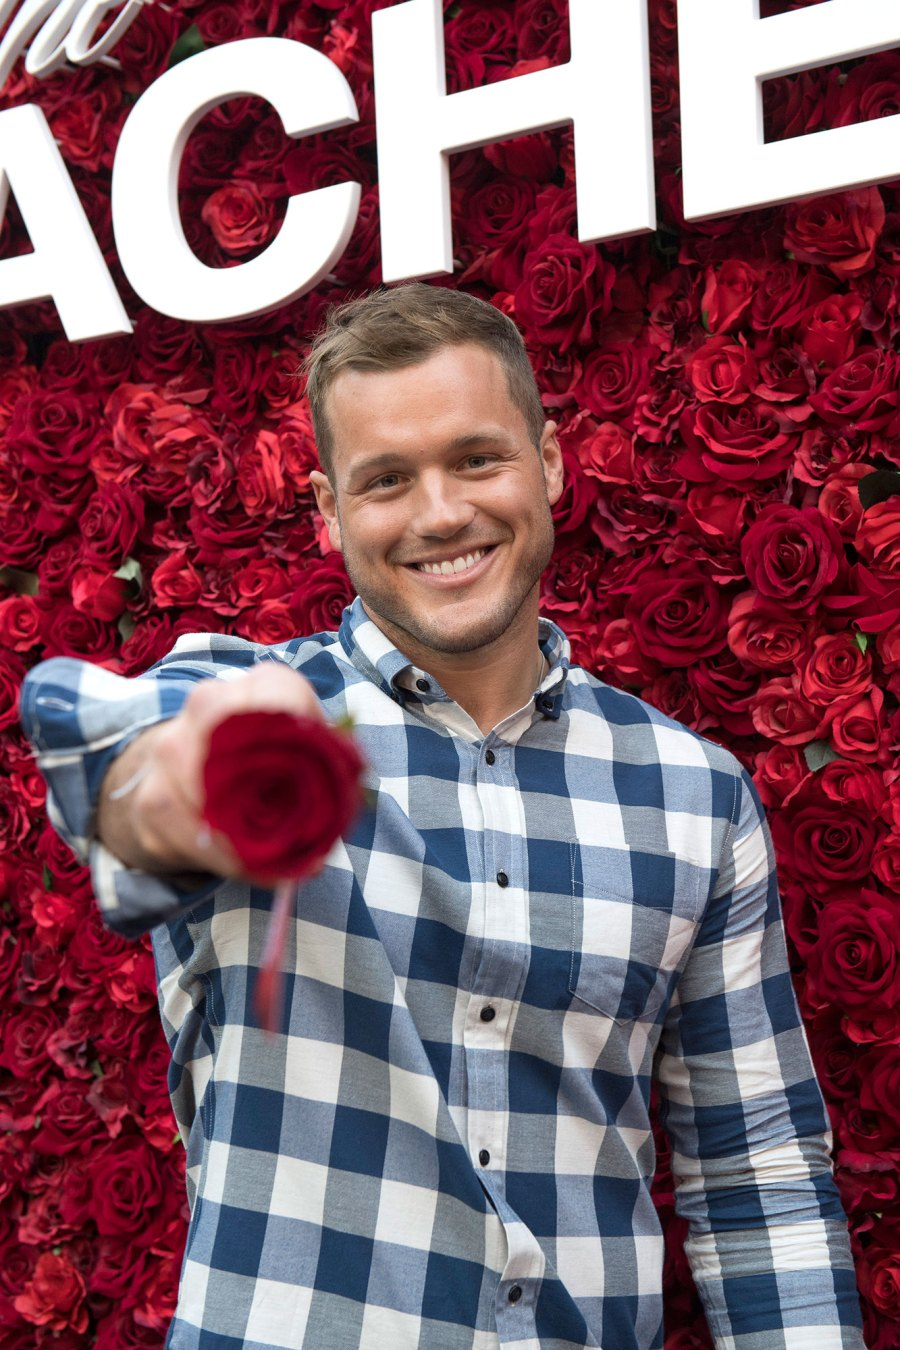 Why He Did The Bachelor Colton Underwood Tell-All